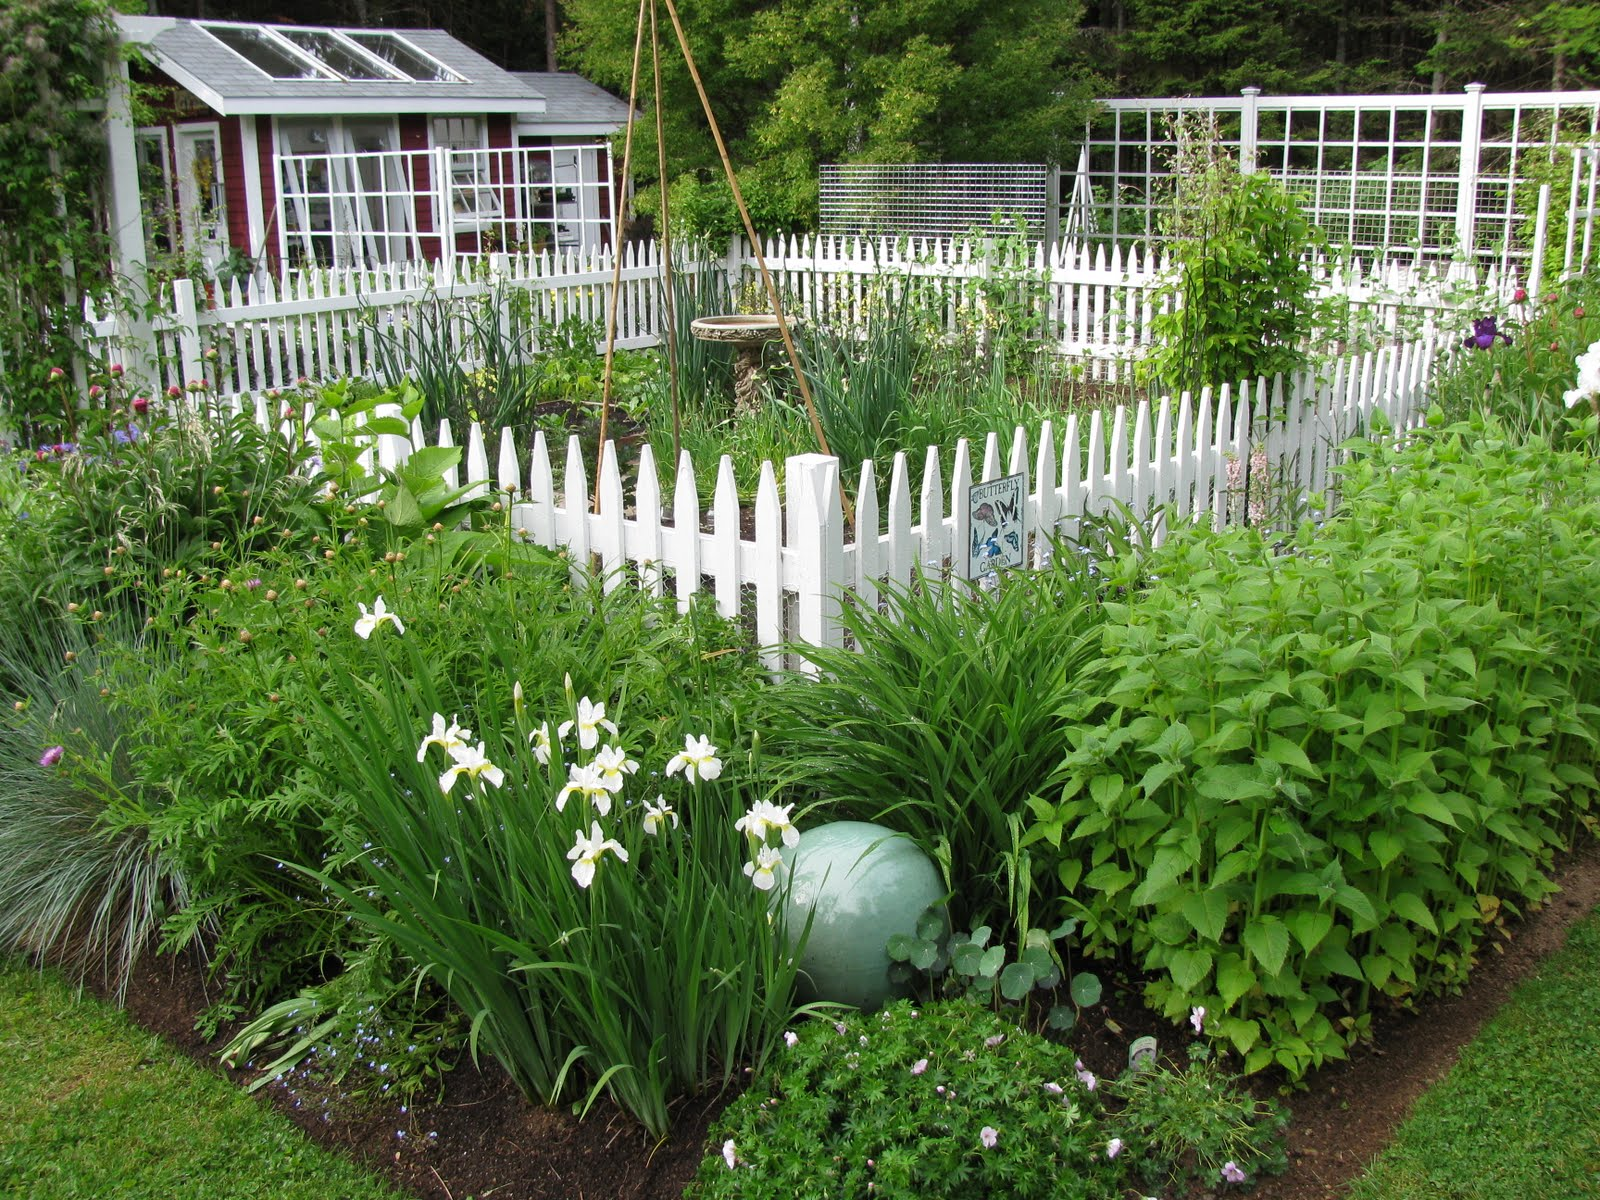 Goedkope Tuinafscheiding Gardeningbren In Nova Scotia The Picket Fence Is Starting